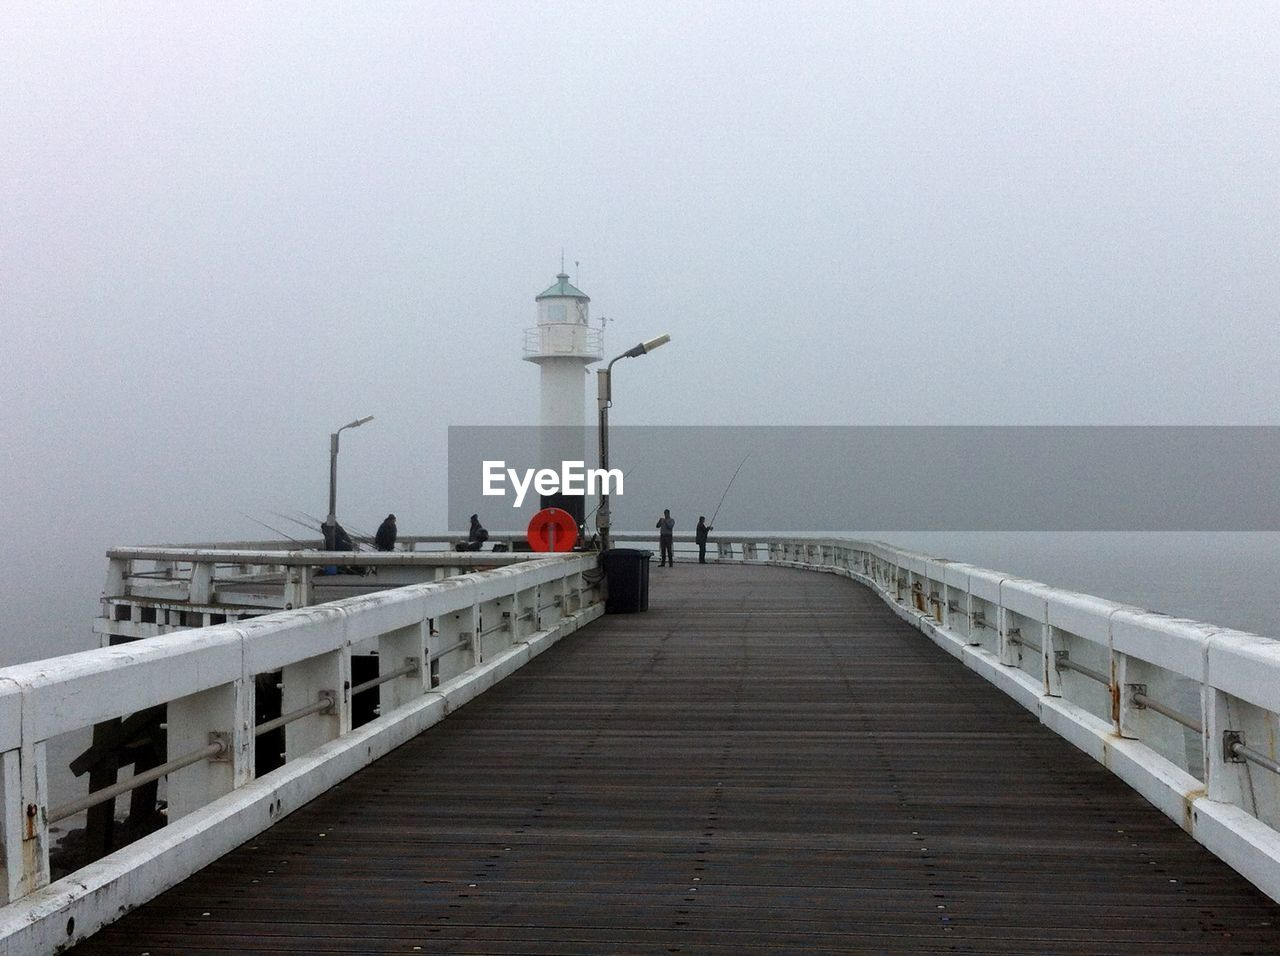 Pier leading towards lighthouse at seaside during foggy weather